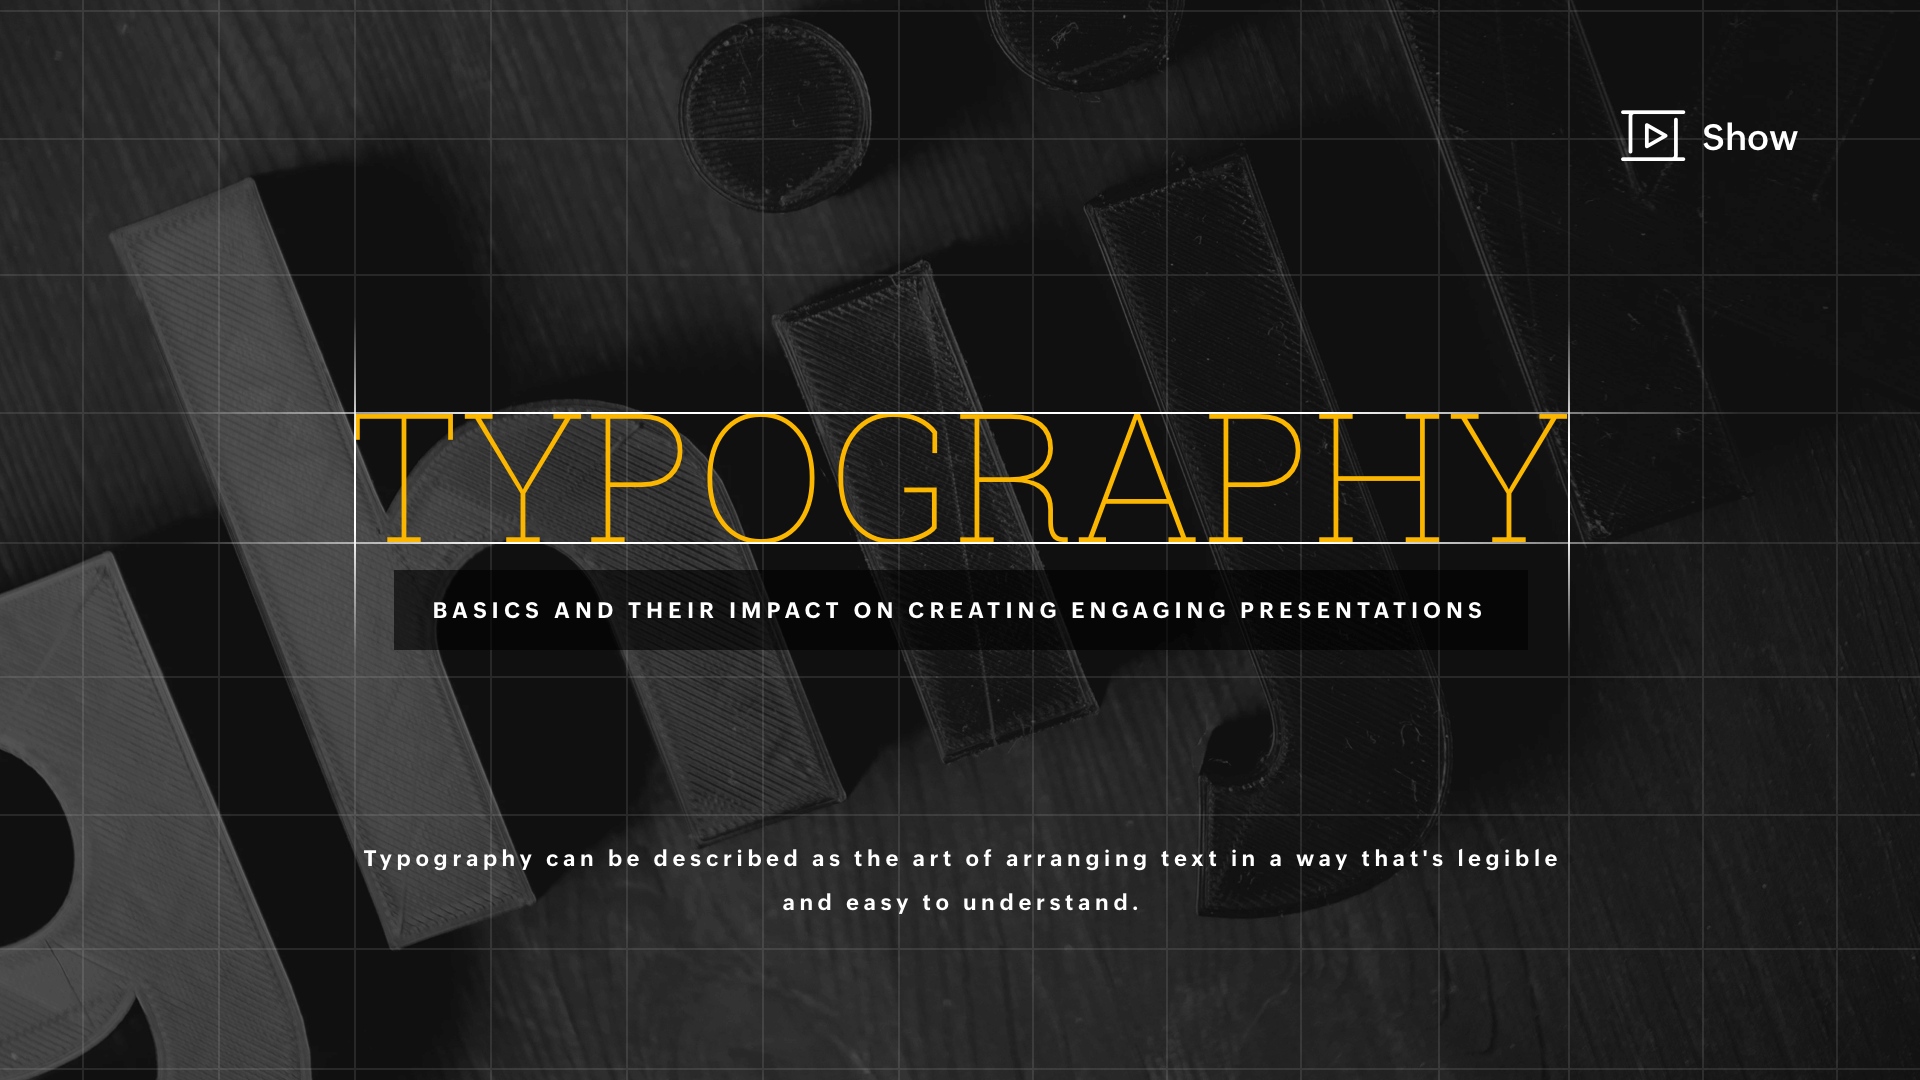 Typography basics and their impact on creating engaging presentations